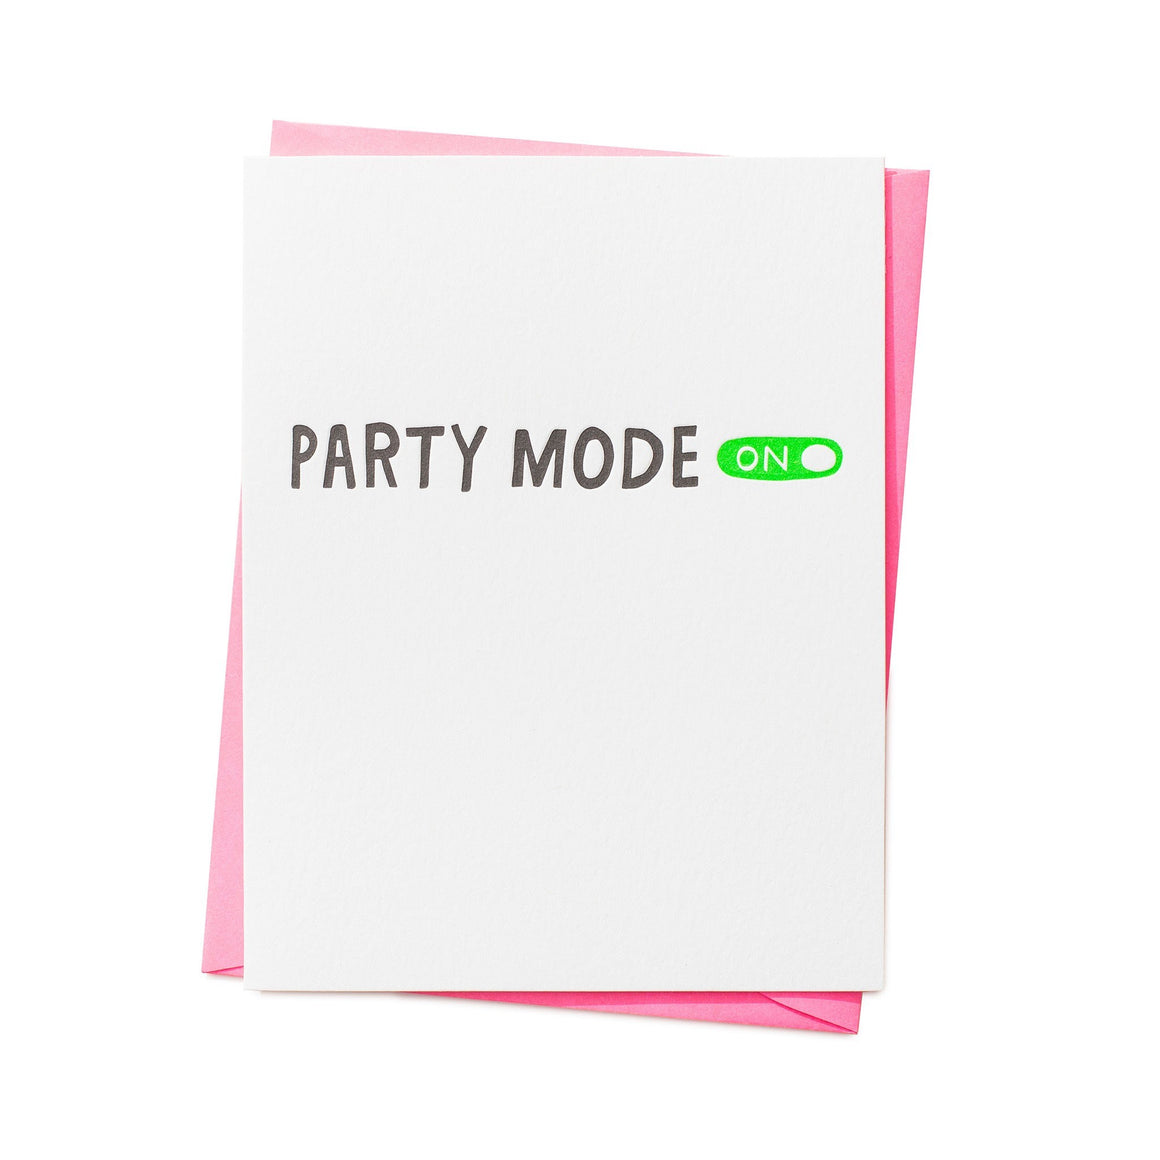 Party Mode On Card